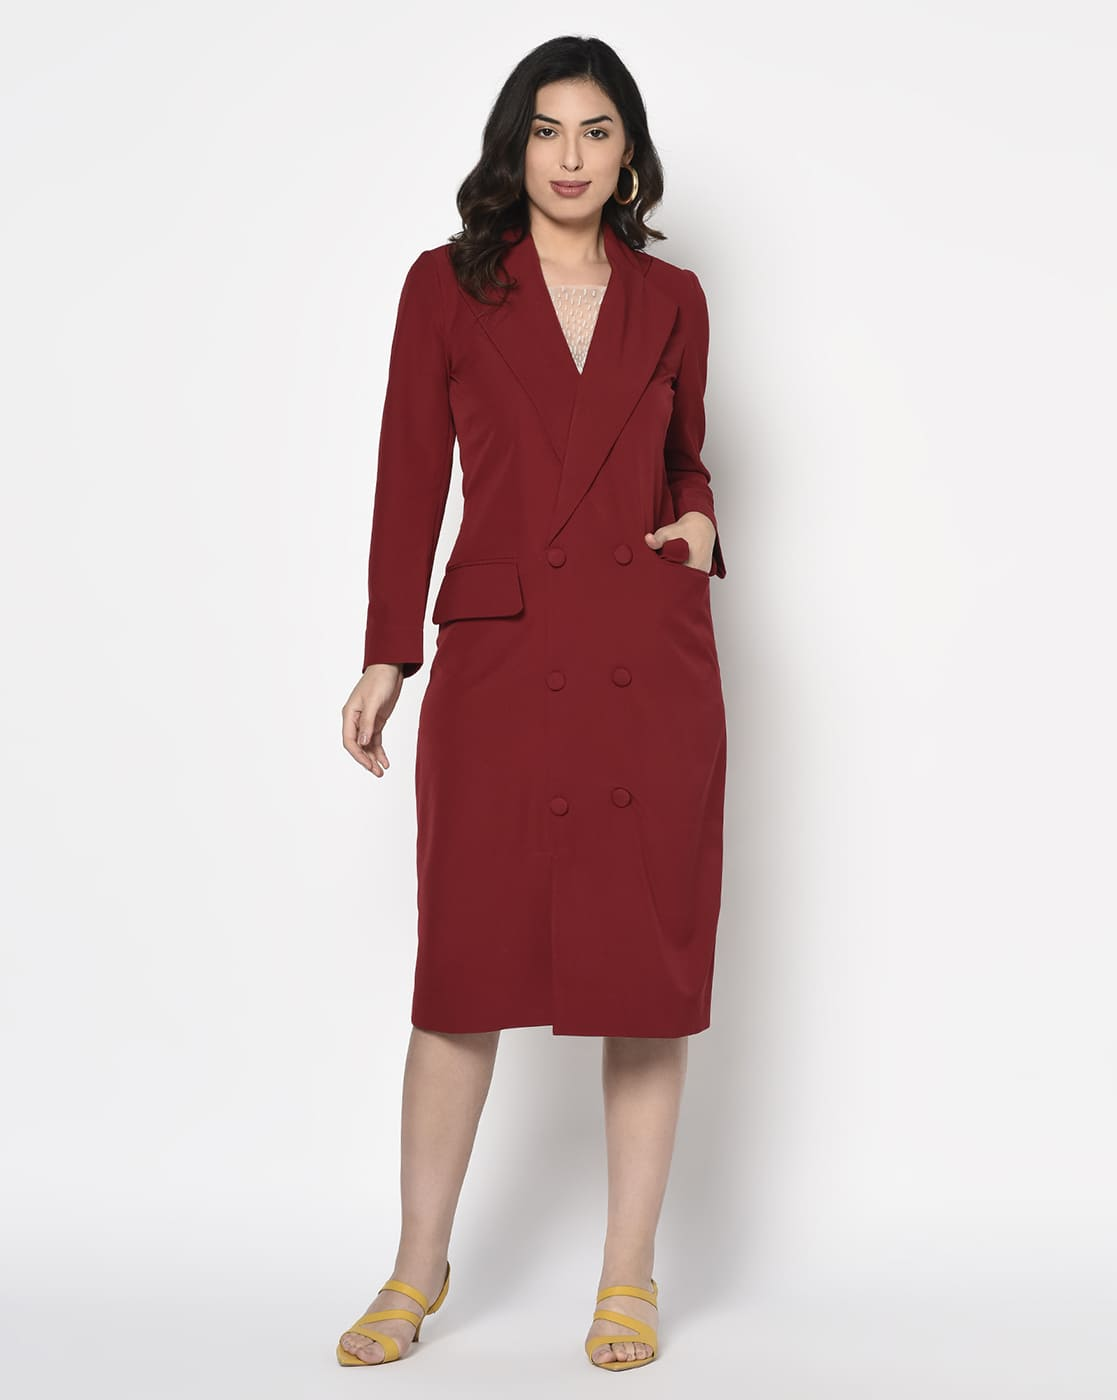 Red crepe Coat Dress